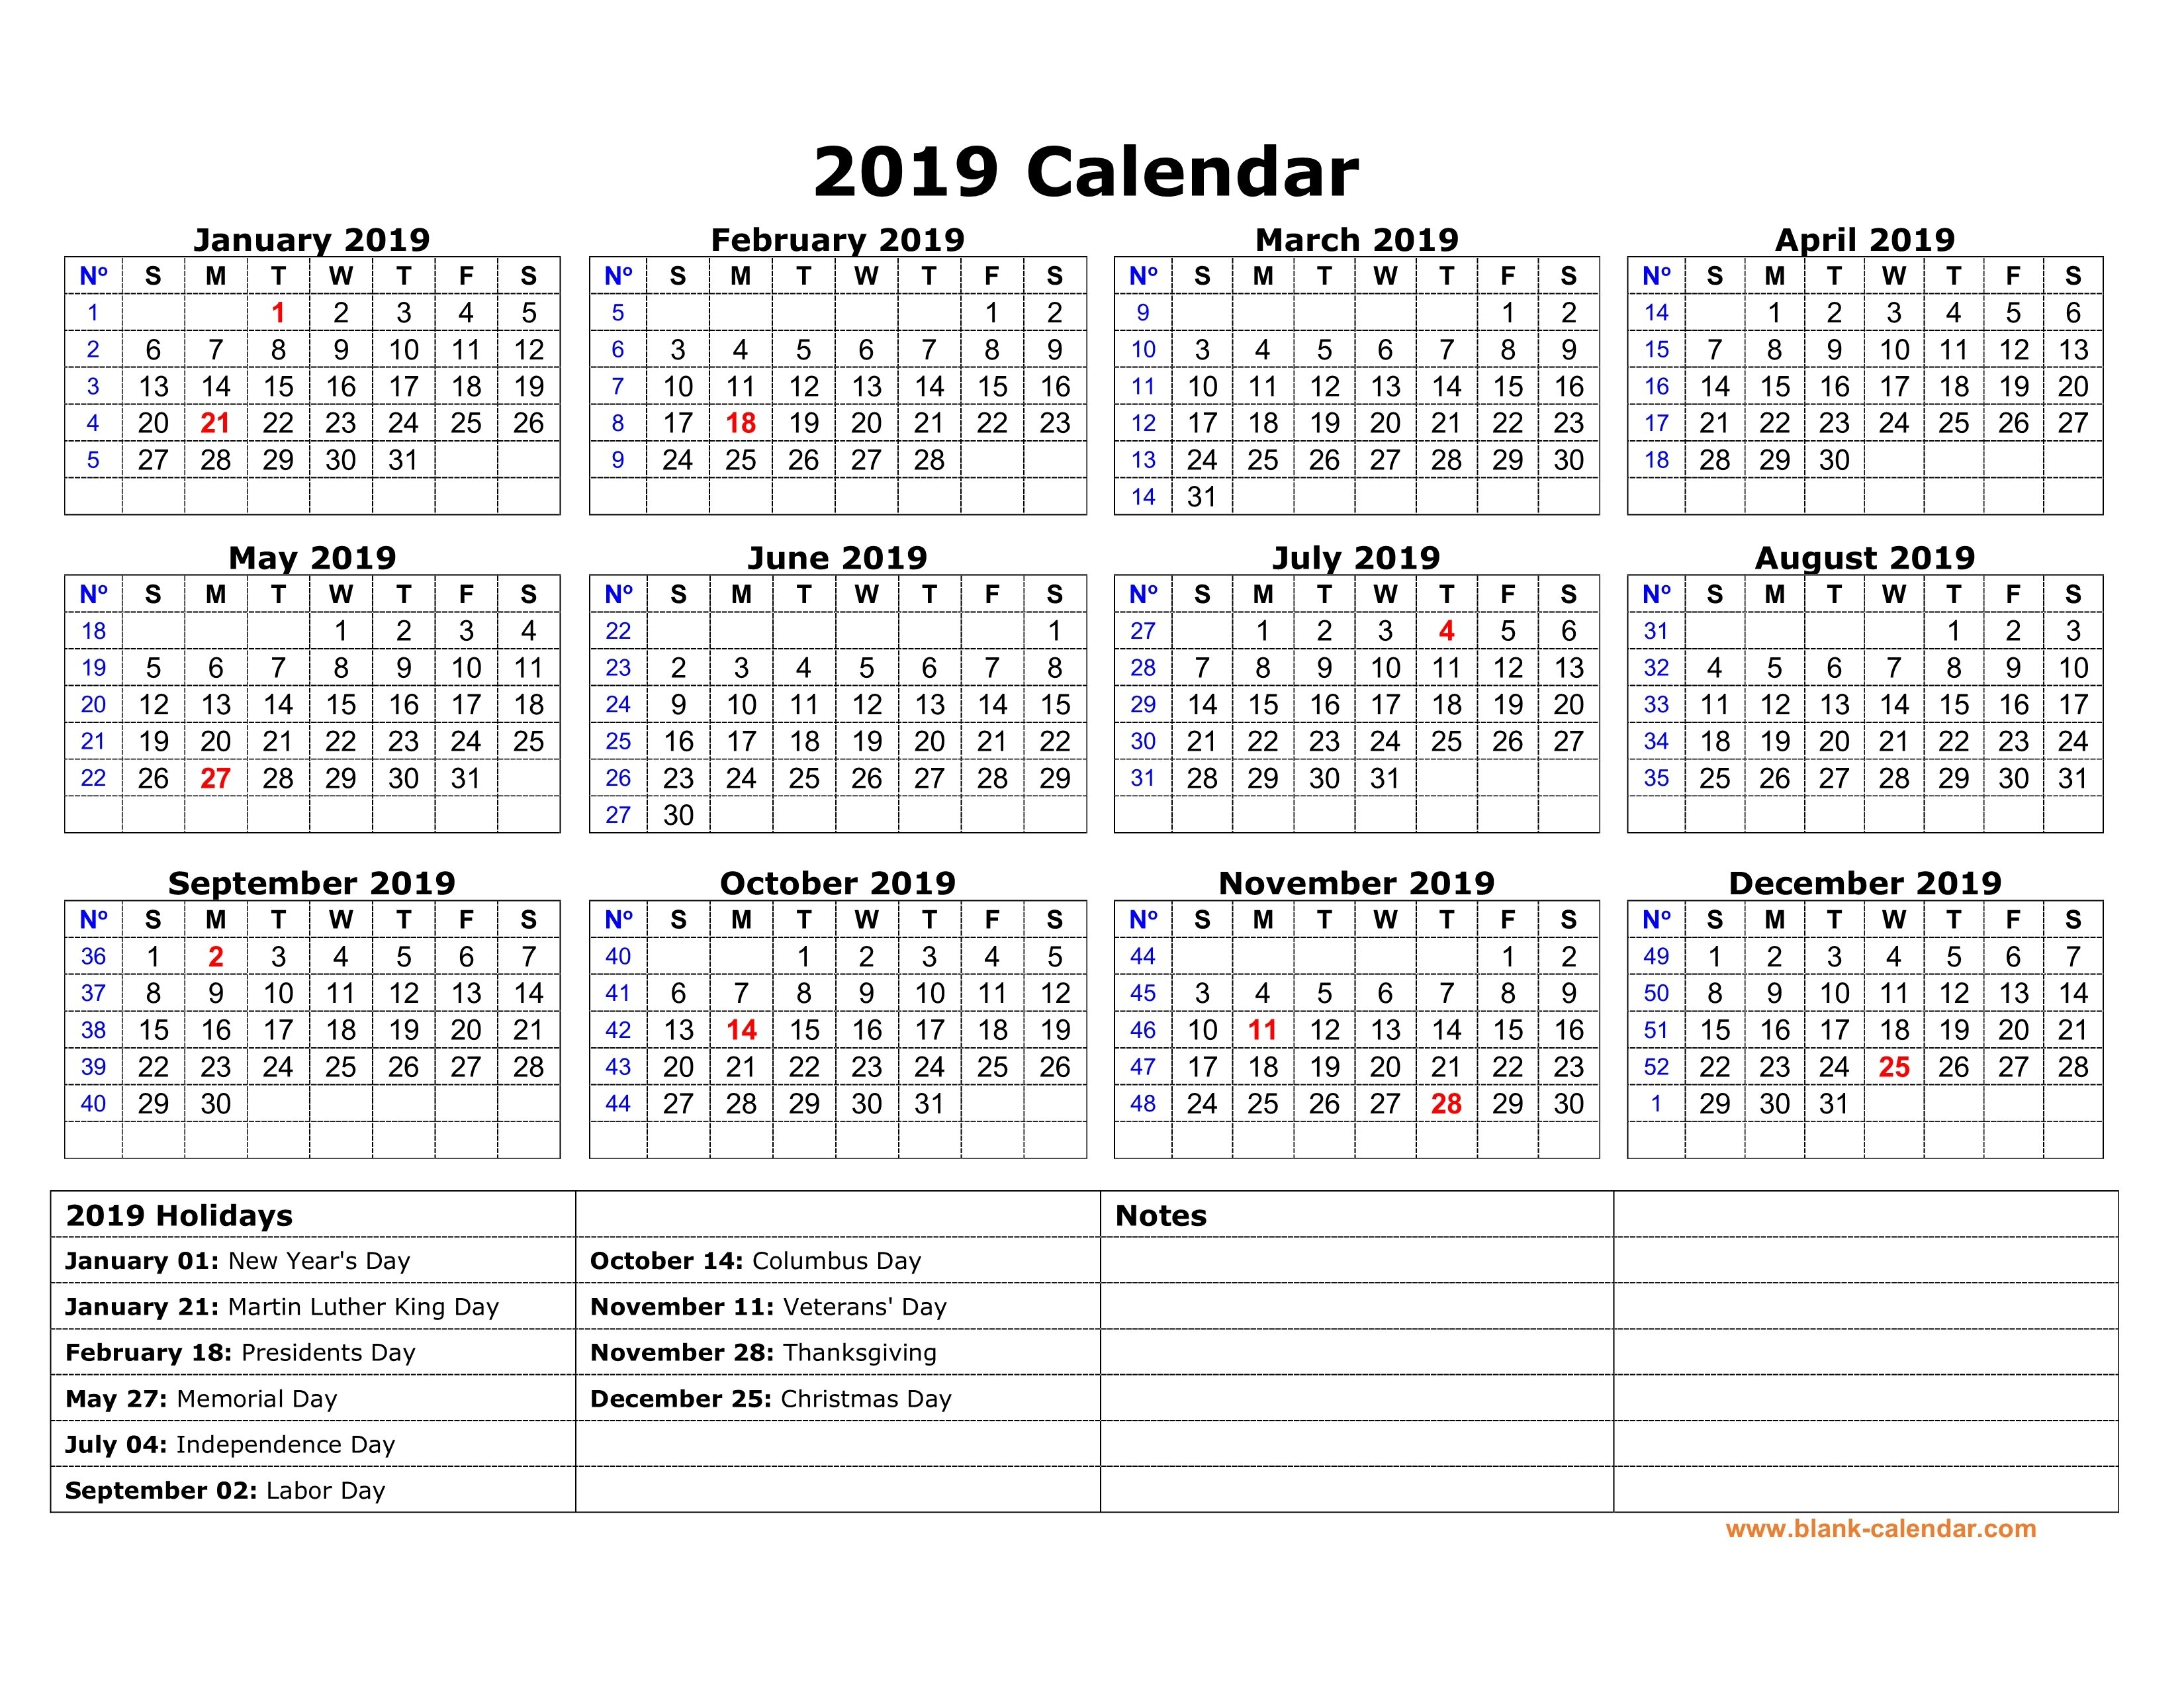 Free Download Printable Calendar 2019 With Us Federal Holidays, One Calendar 2019 With Holidays Usa